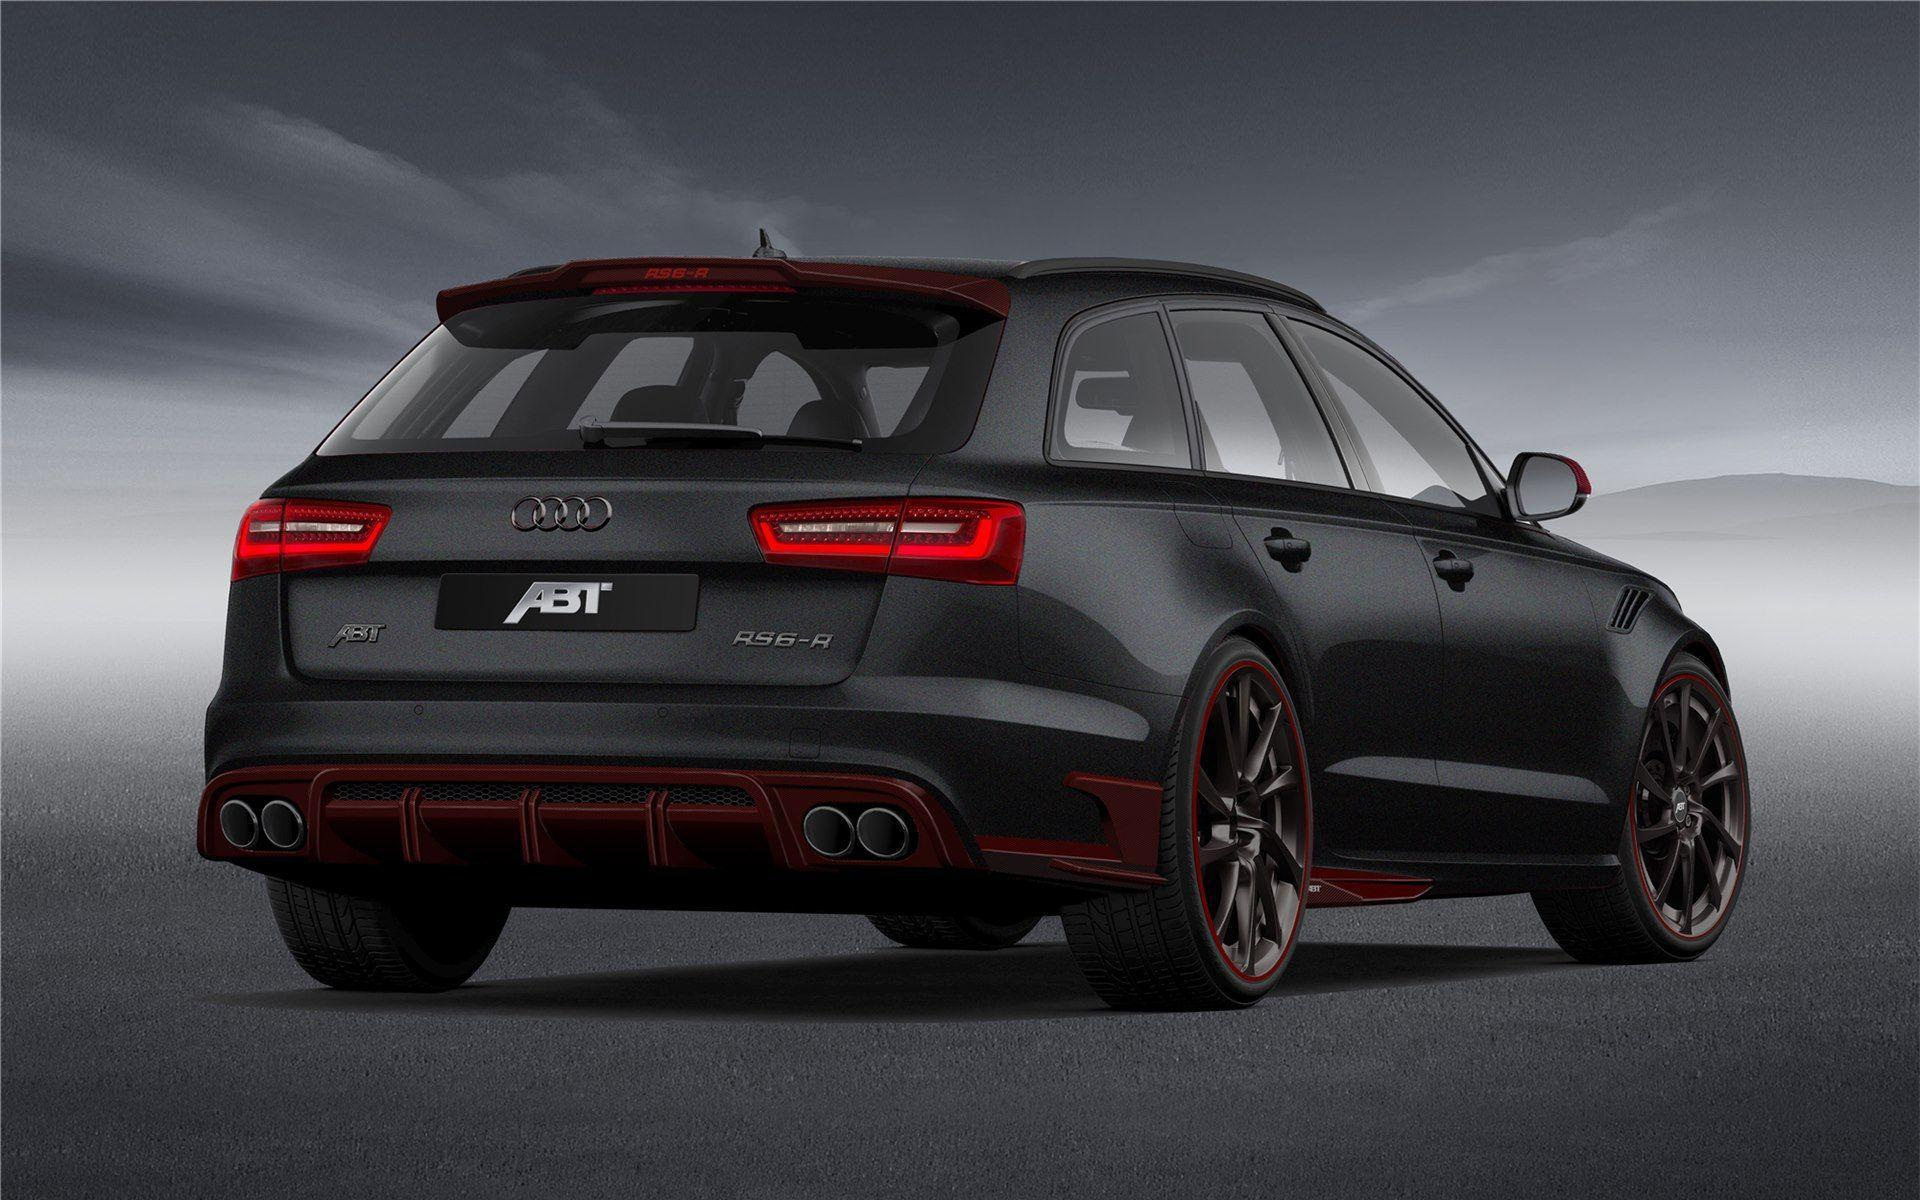 Ct Tuning Audi Rs6 Wallpaper Hd Car Wallpapers - illinois-liver